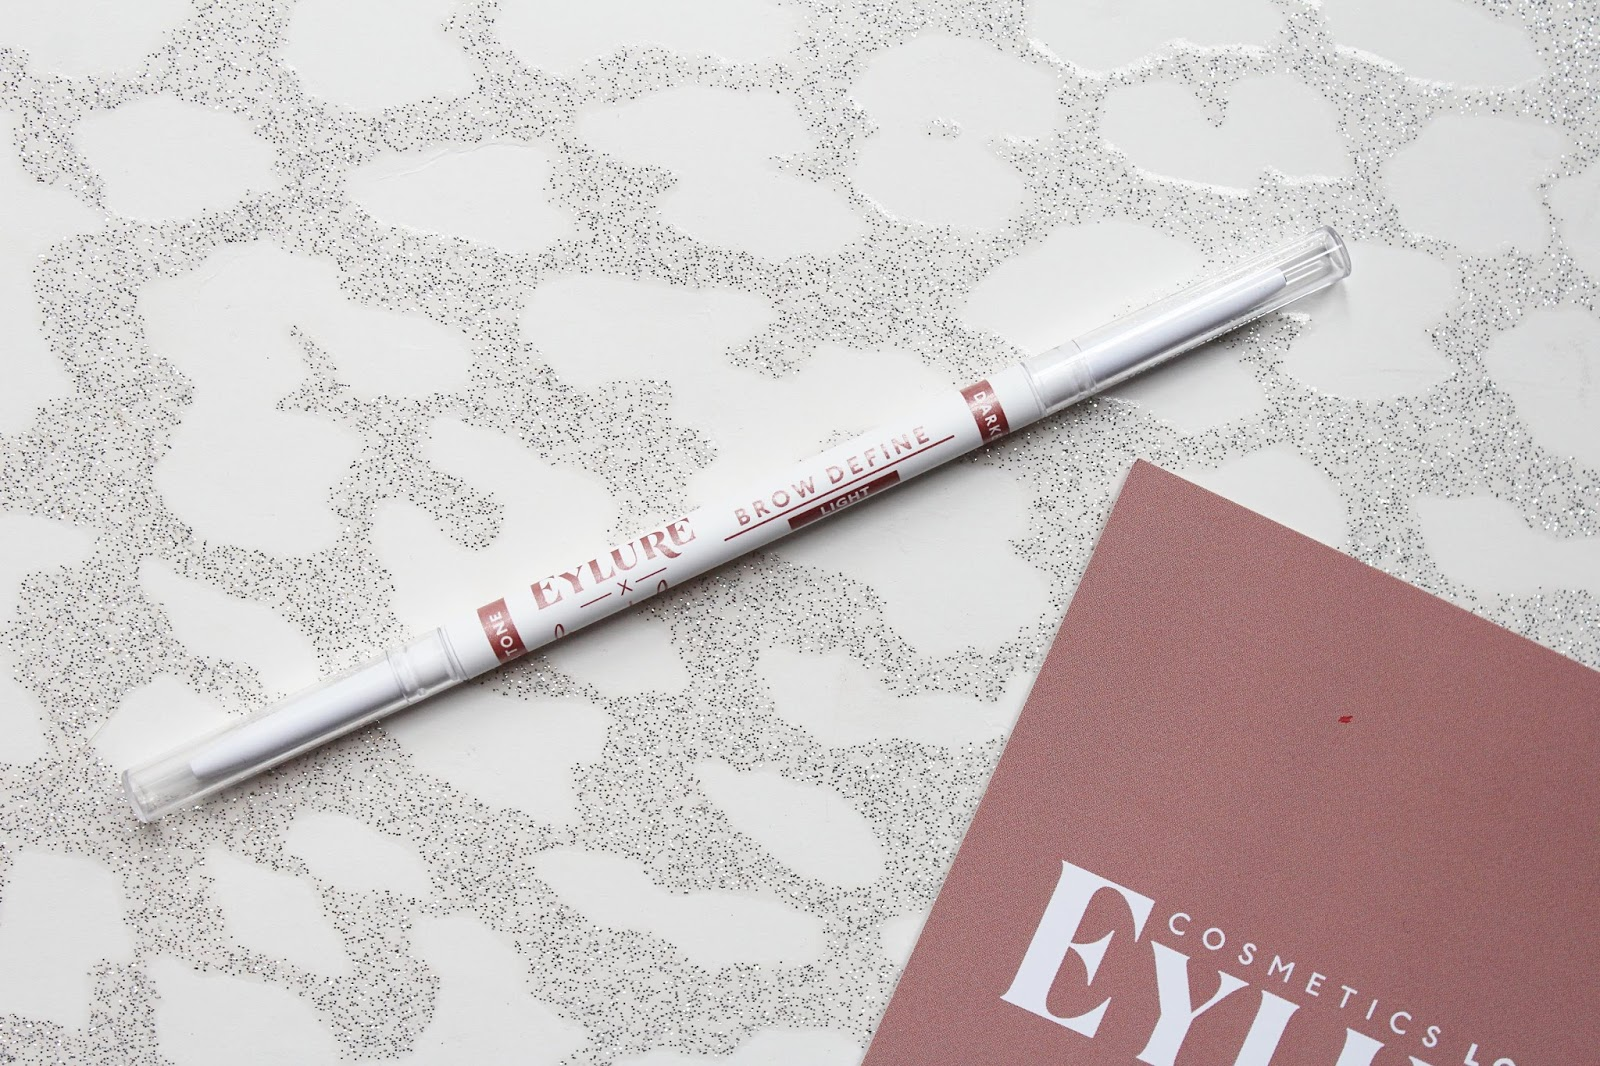 Eylure x Fleur de Force Brow Definer Review